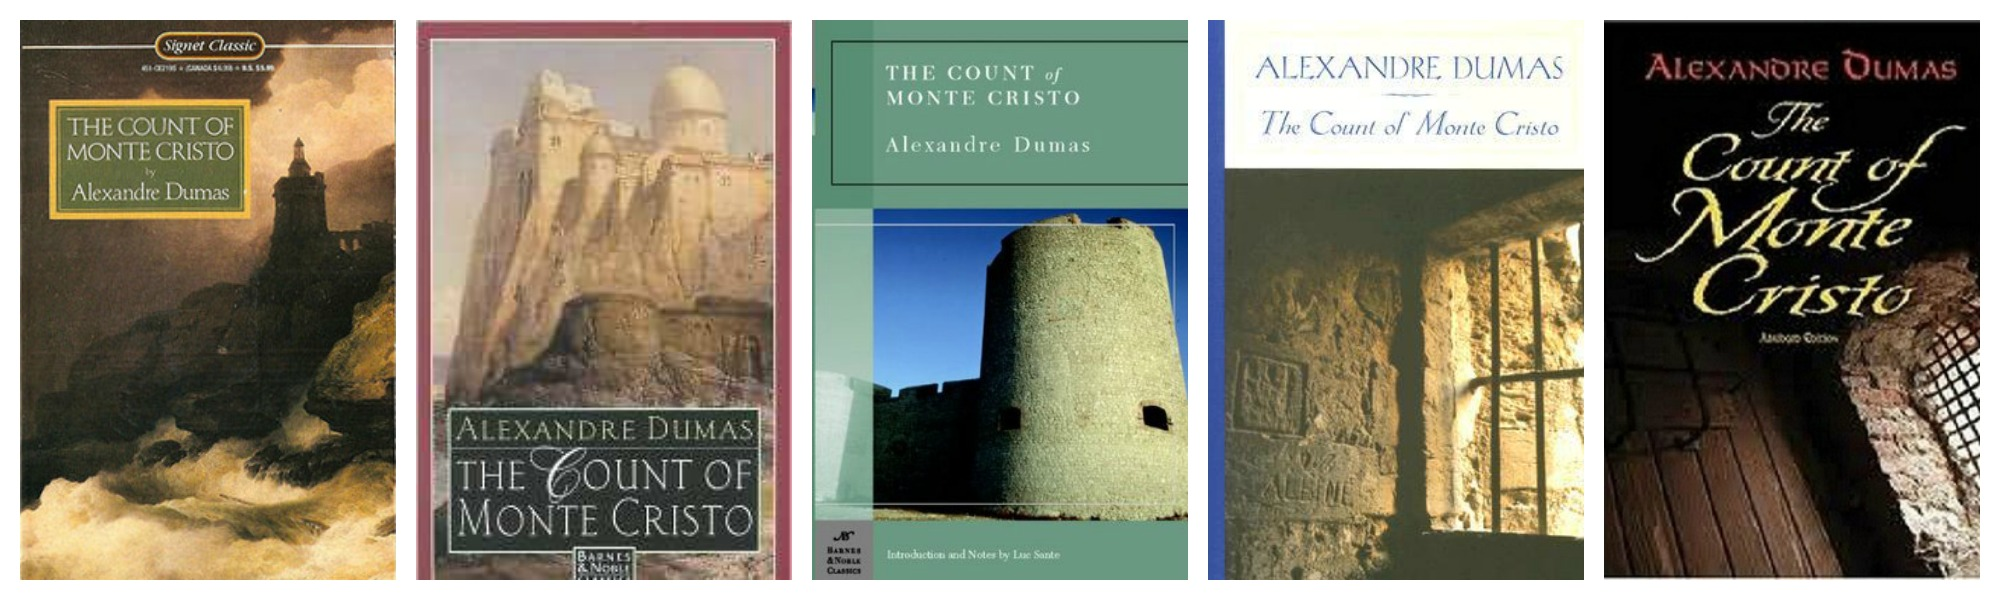 The Count of Monte Cristo Covers 4